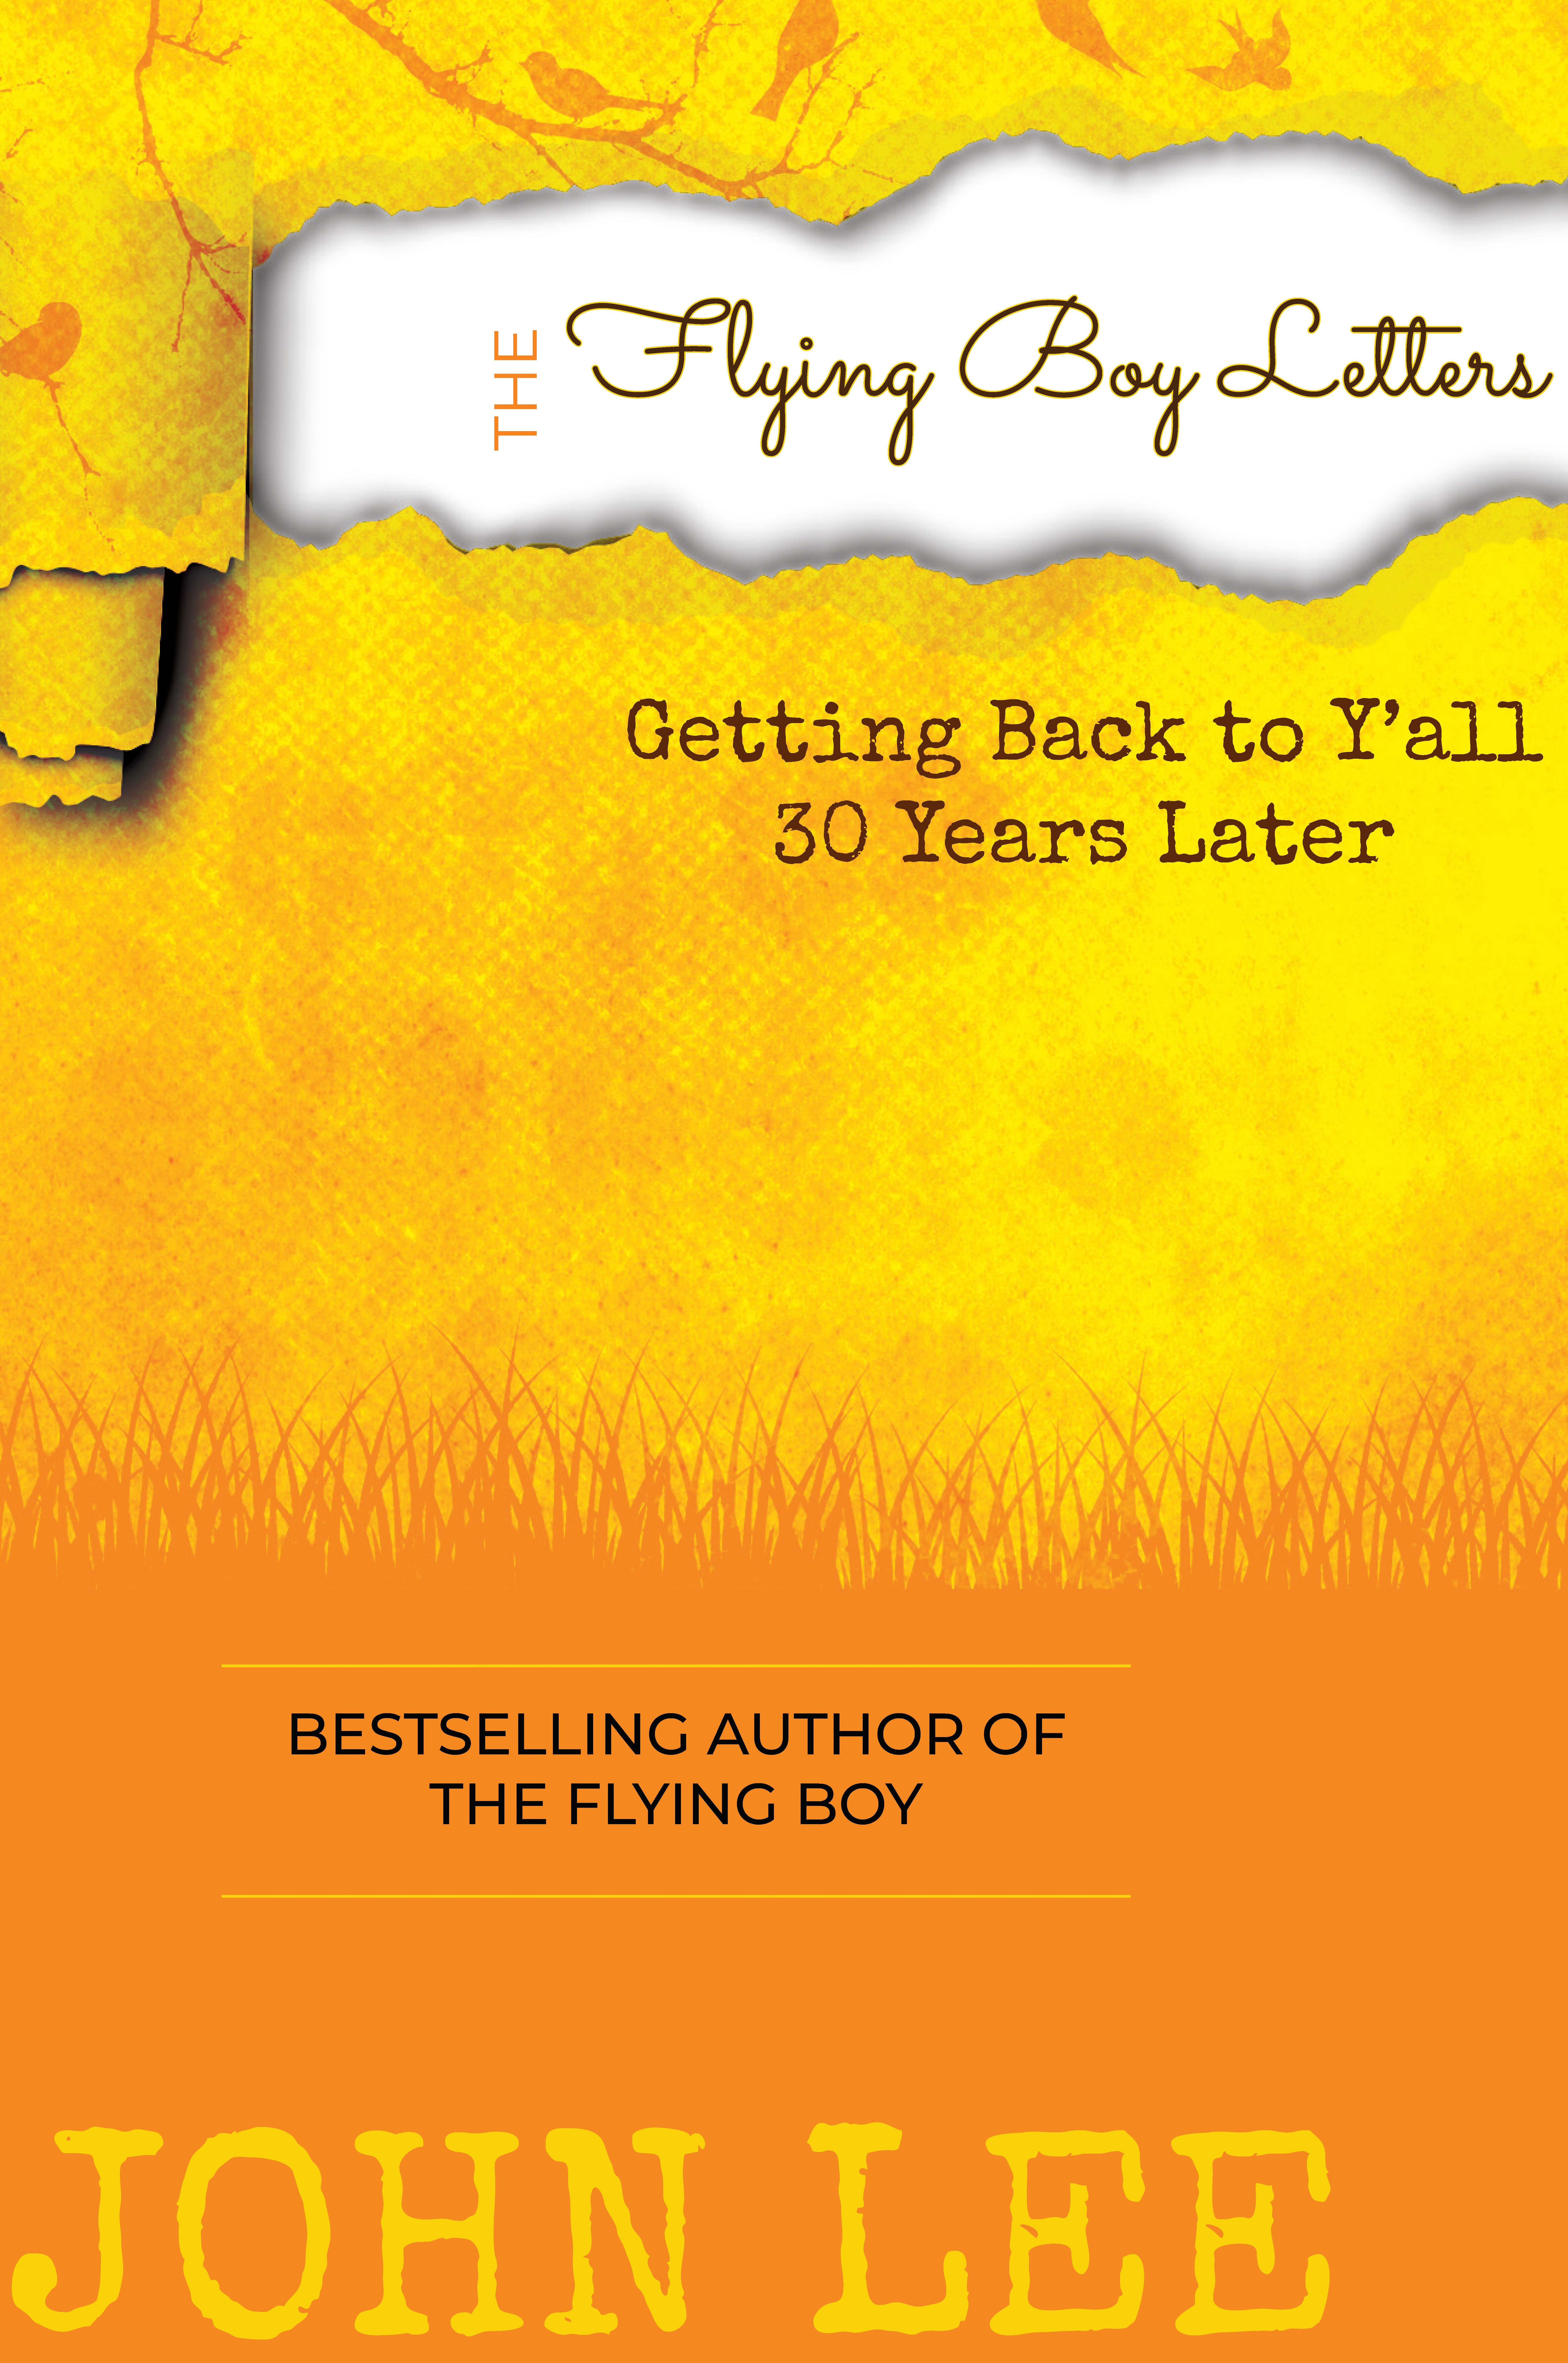 The Flying Boy Letters: Getting Back to Y'all 30 Years Later